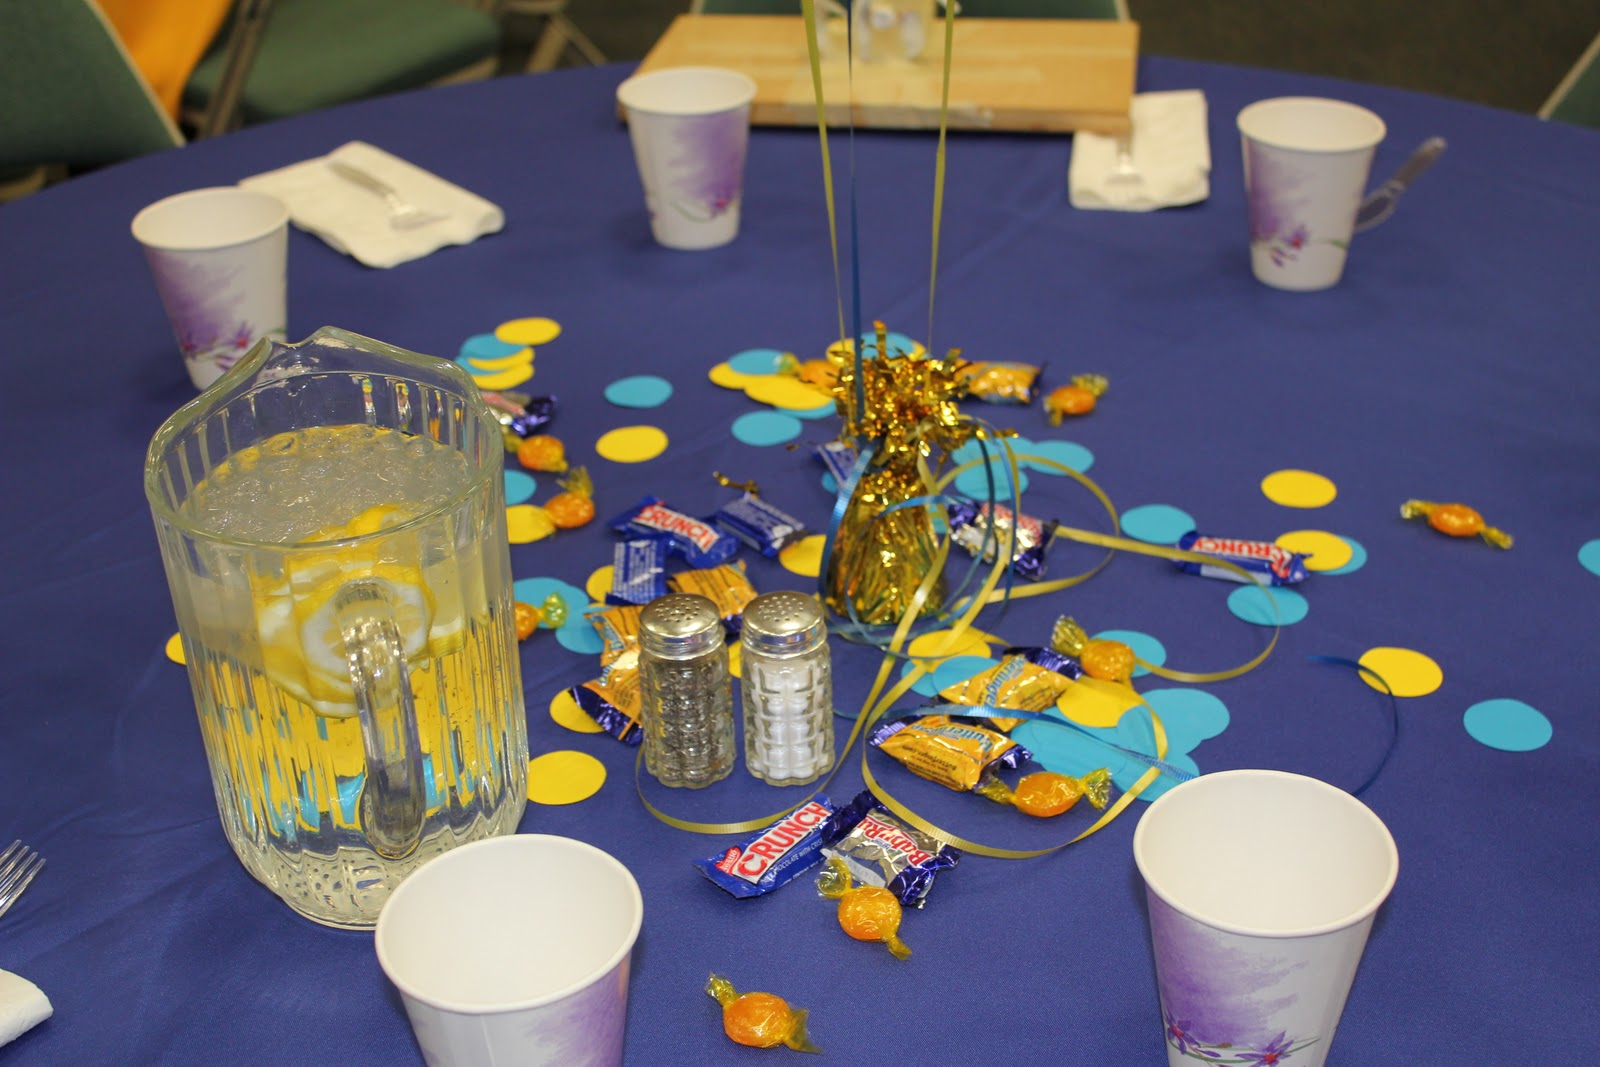 Cub Scout Blue and Gold Banquet